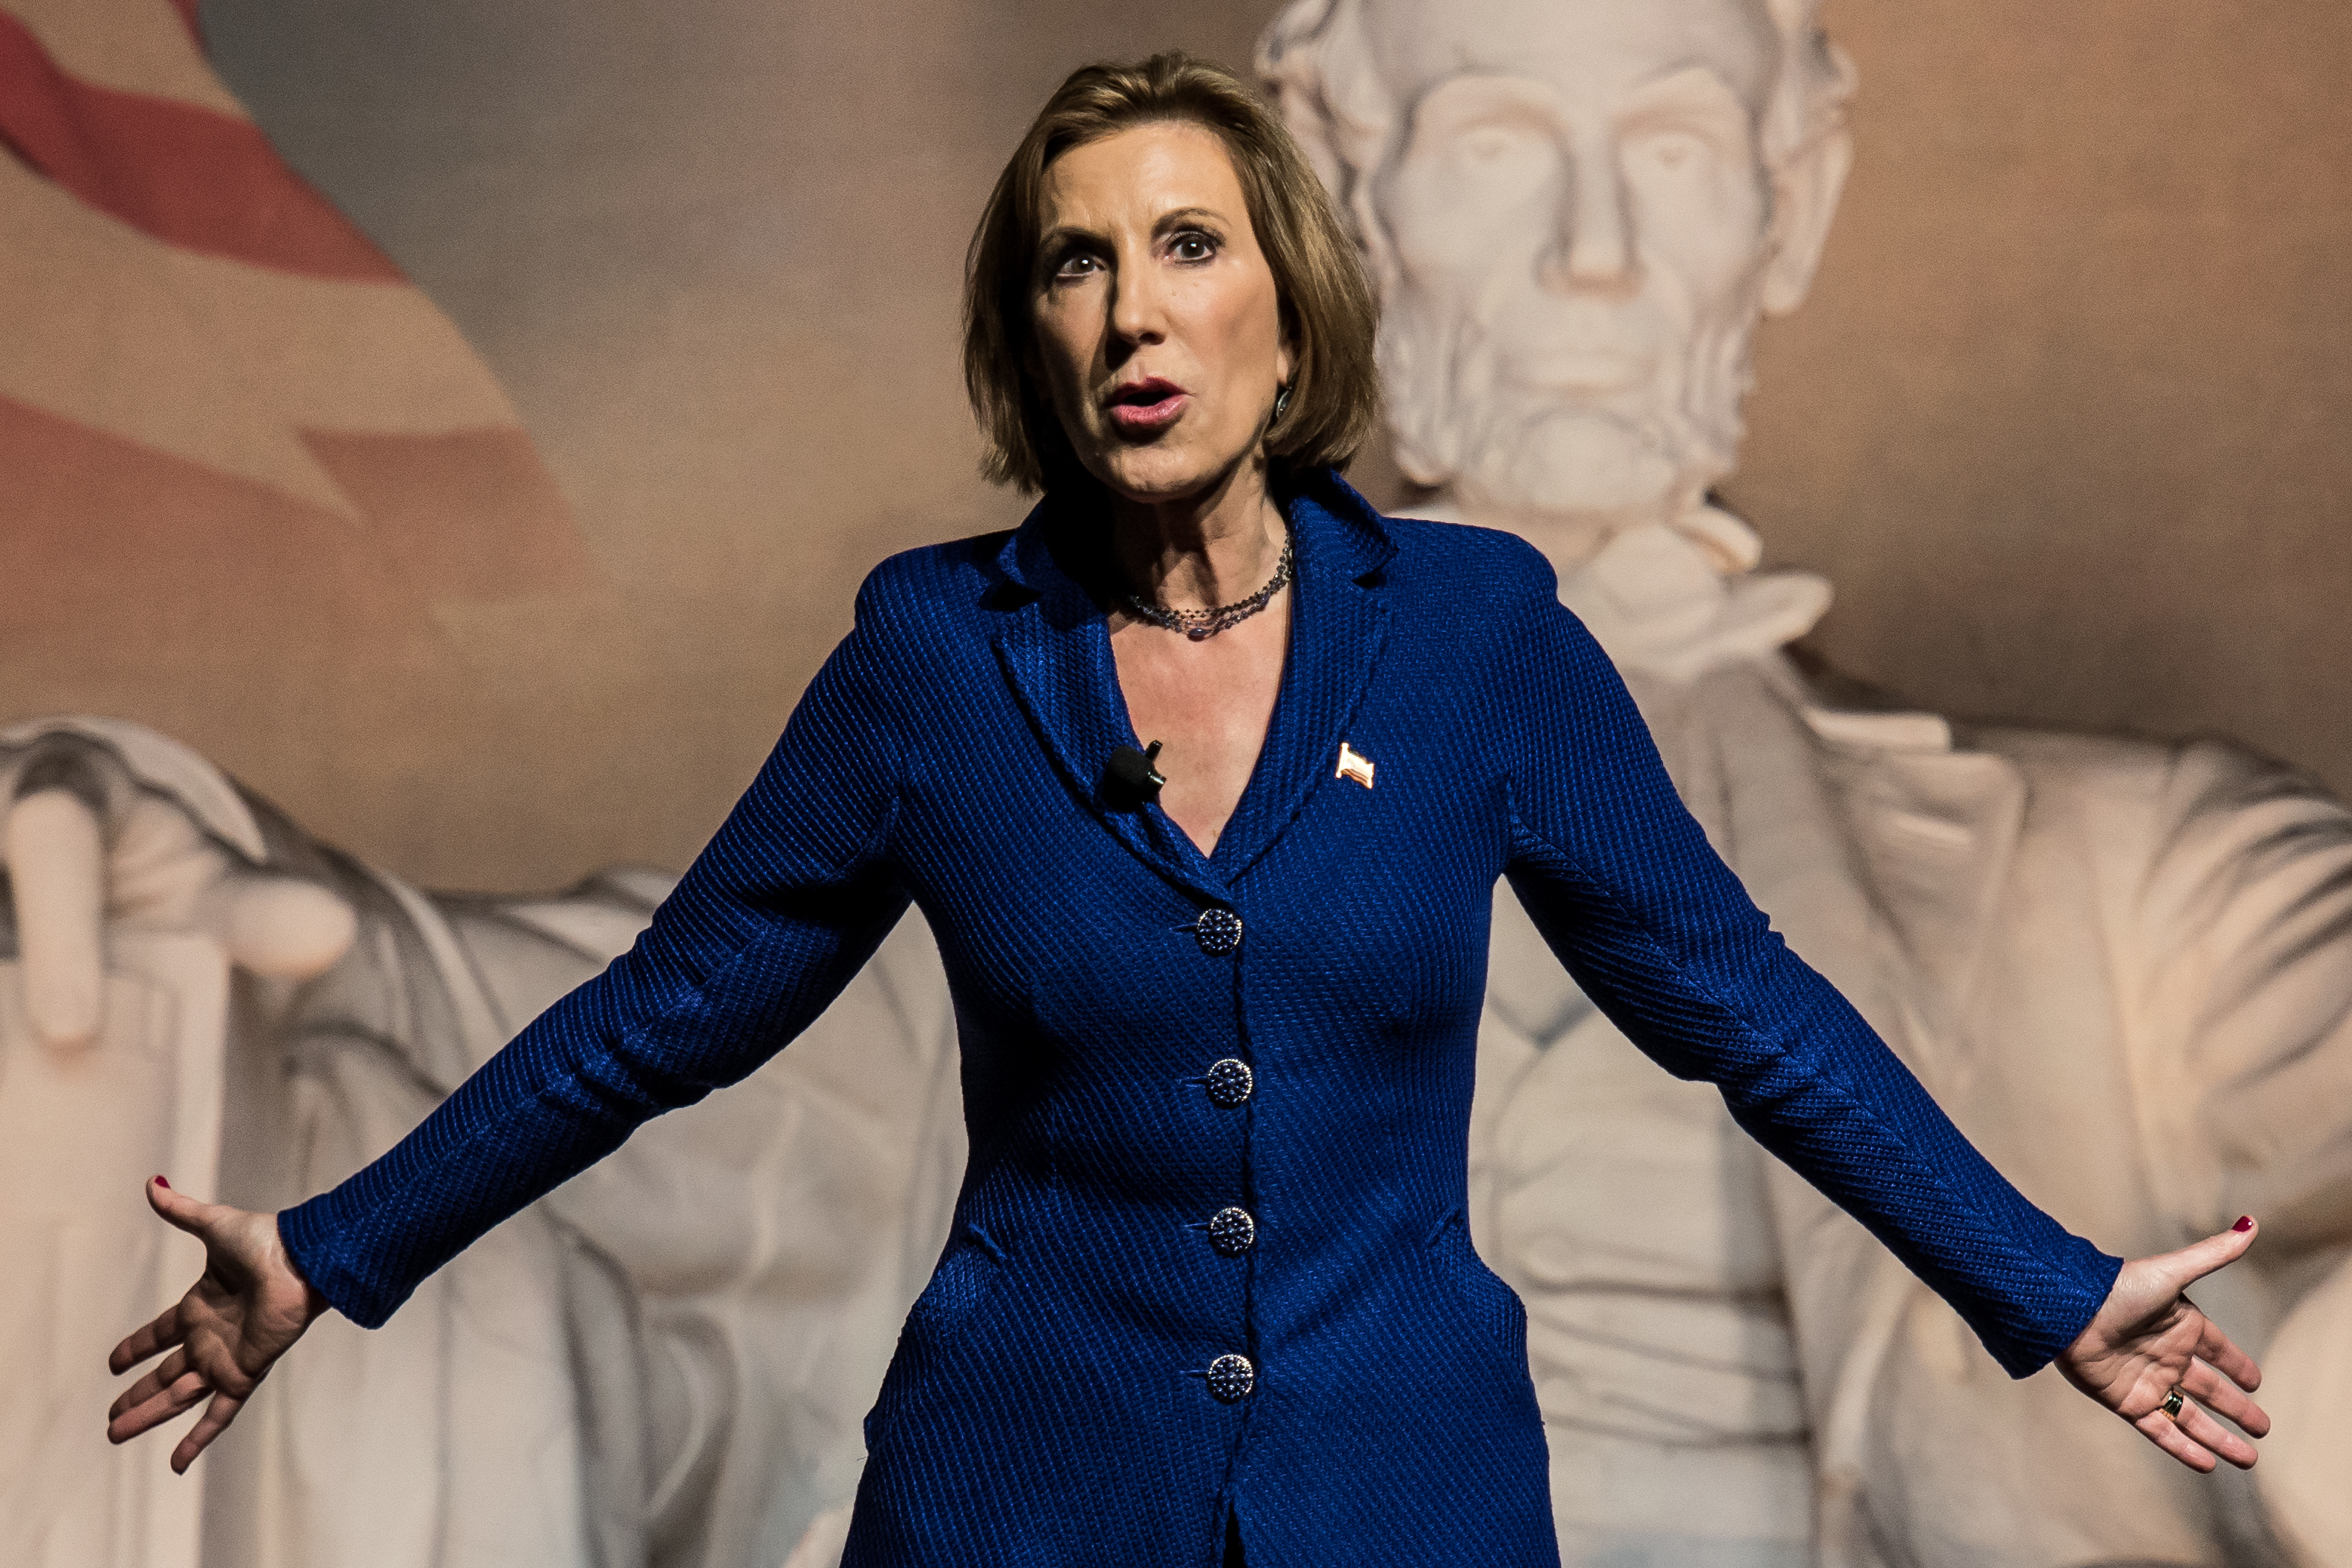 Republican presidential candidate Carly Fiorina speaks to voters at a town hall meeting.